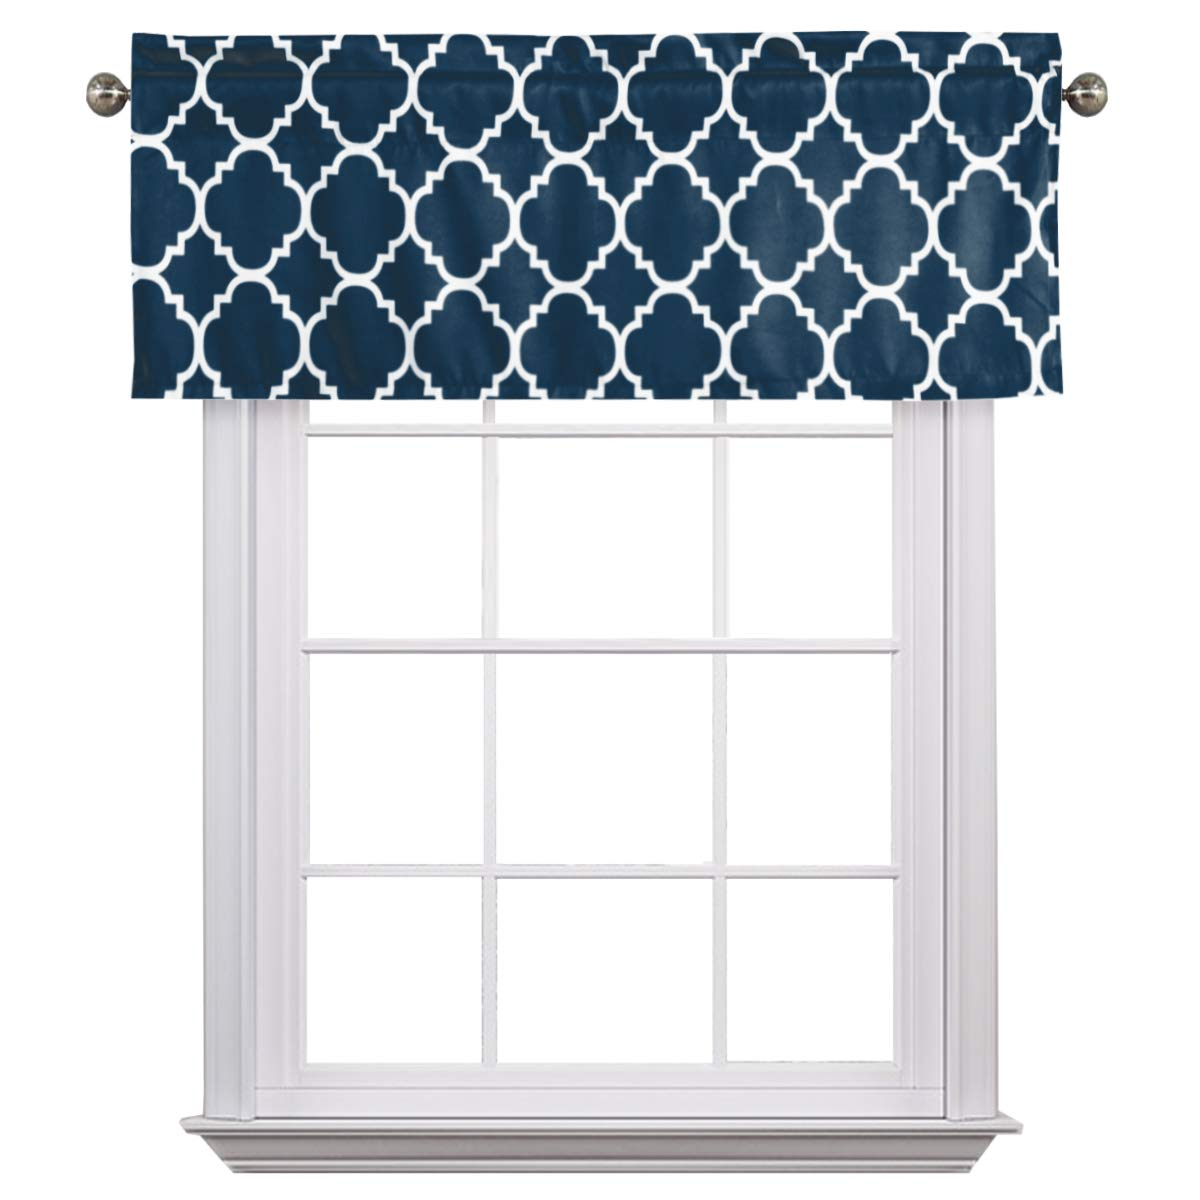 Flamingo P Moroccan Navy Valance Curtain Extra Wide and Short Window Treatment for for Kitchen Living Dining Room Bathroom Kids Girl Baby Nursery Bedroom 52'' X18''